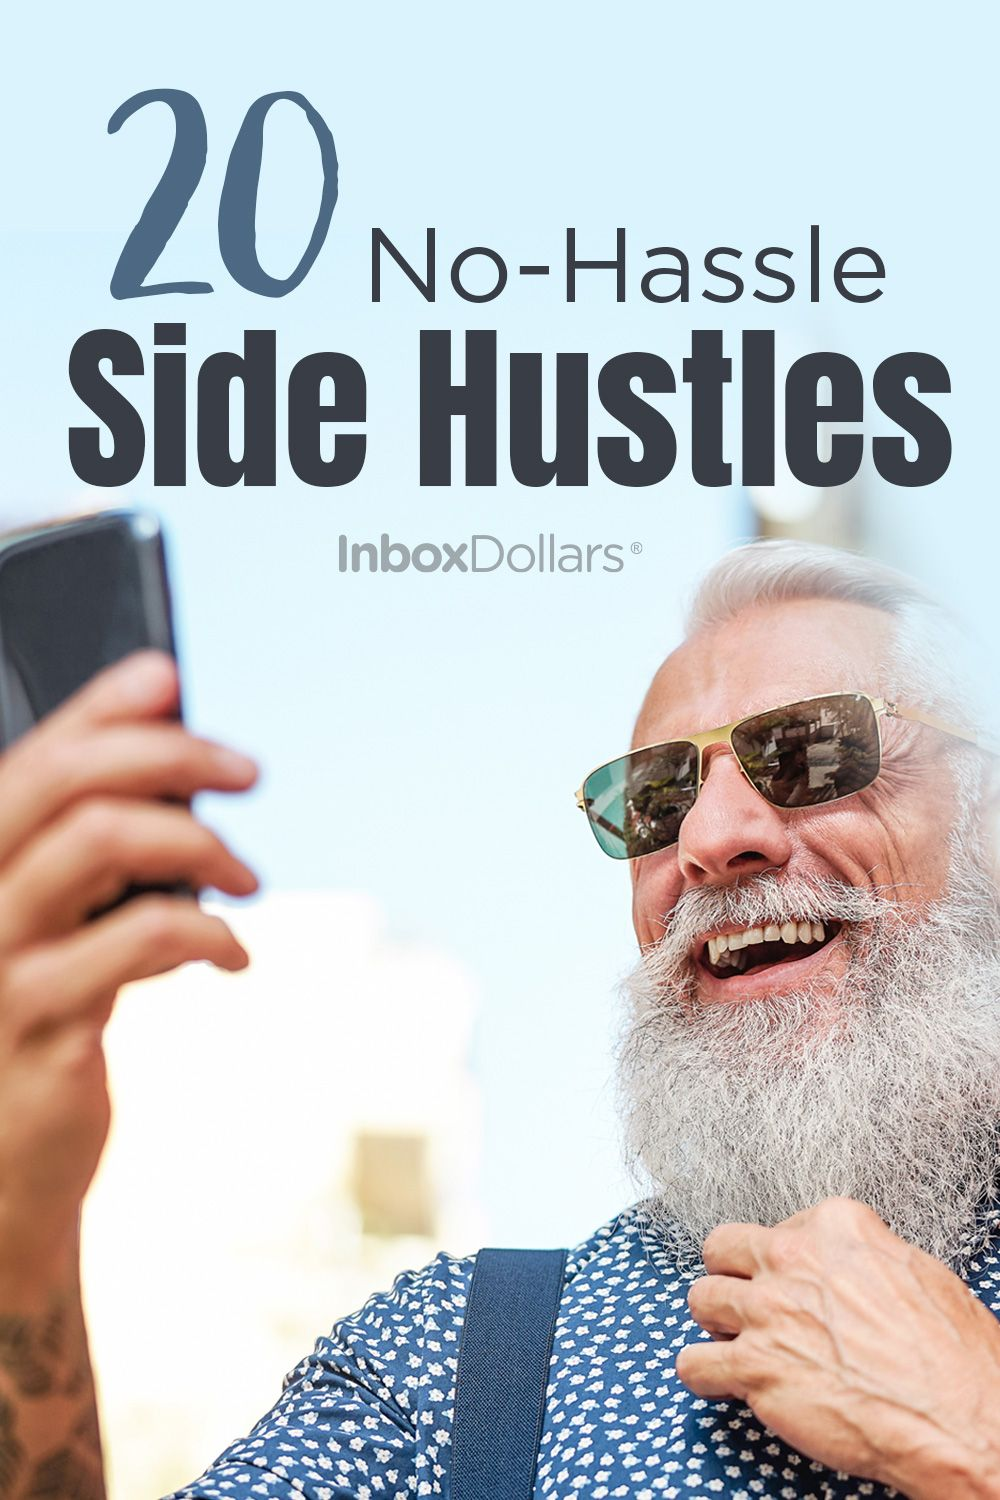 Here are 20 real side hustles you can do to earn extra